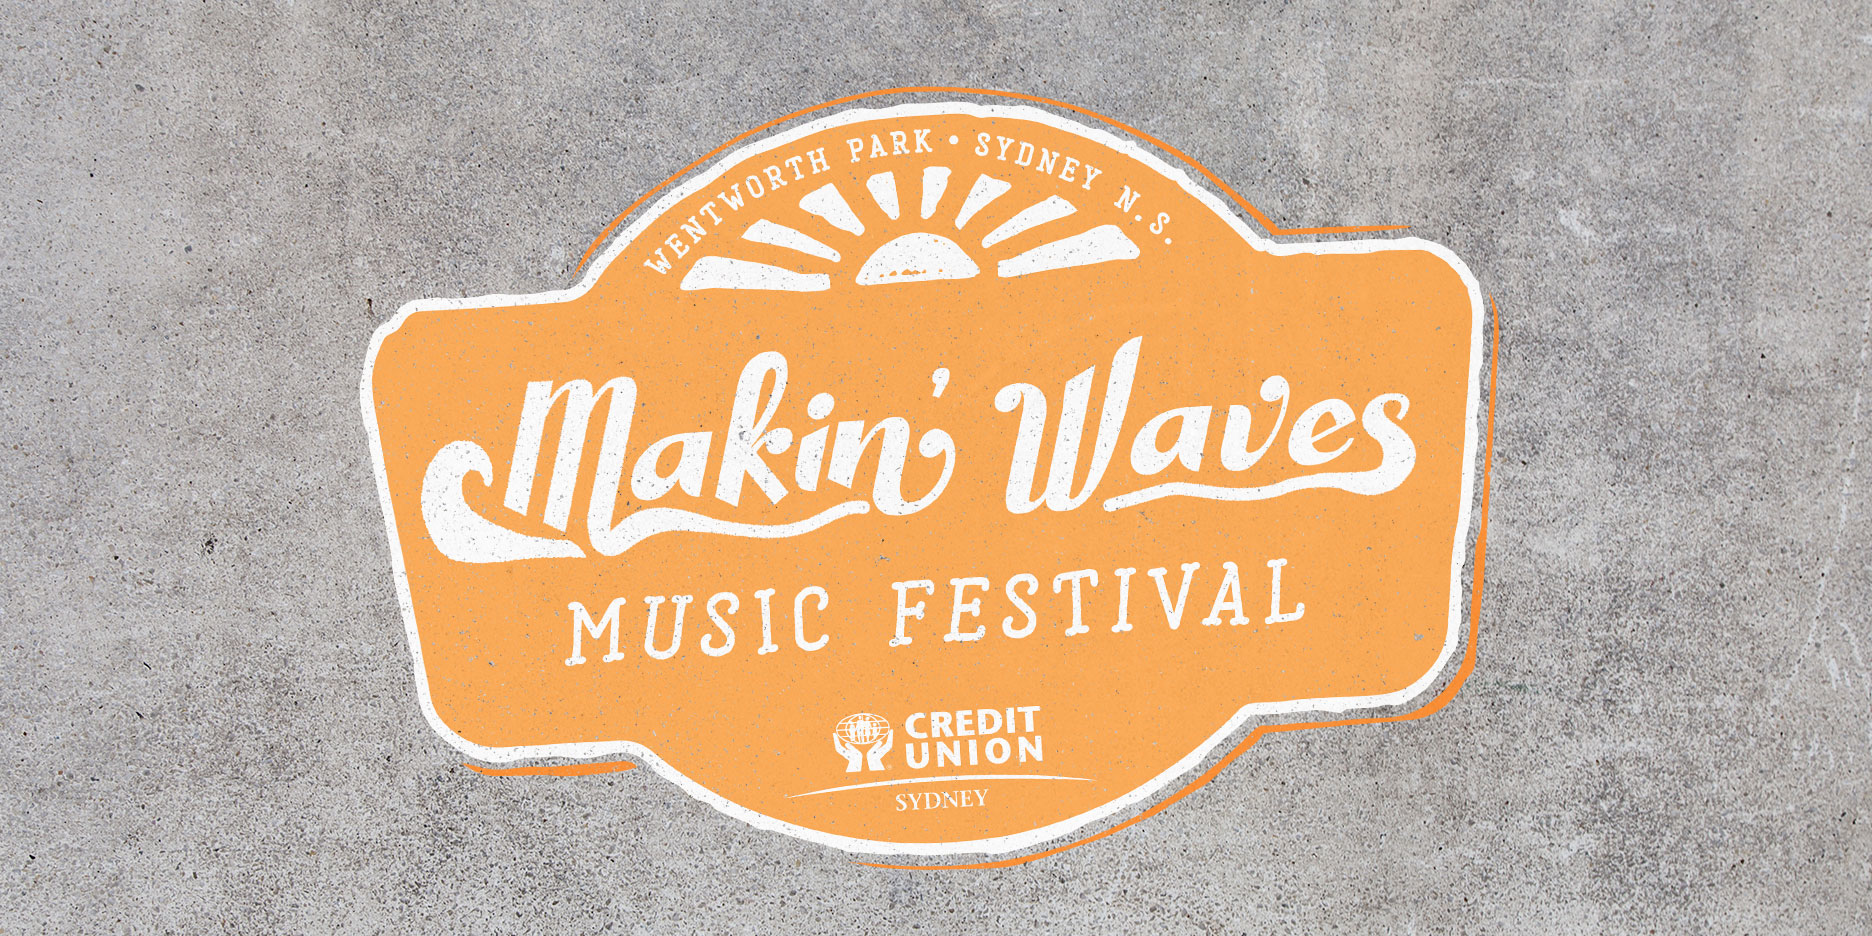 MakinWaves_LogoDesign.jpg